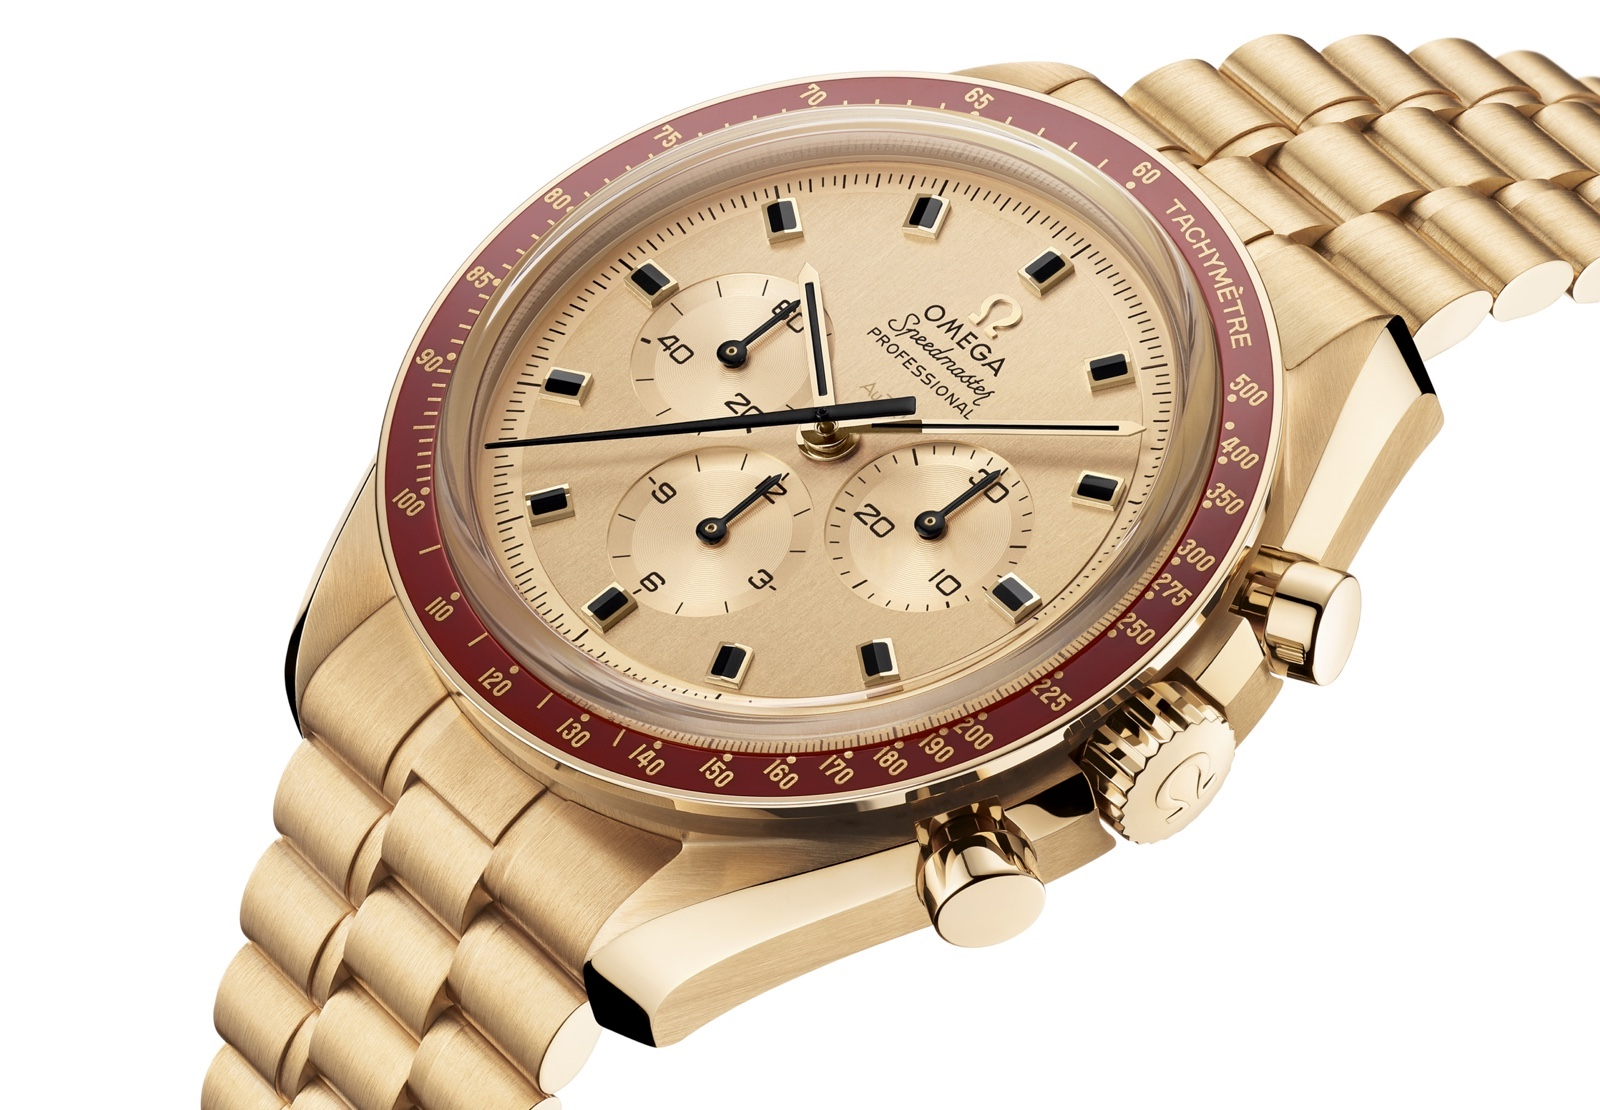 Omega-Speedmaster-Apollo-11-50th-Anniversary-Esfera